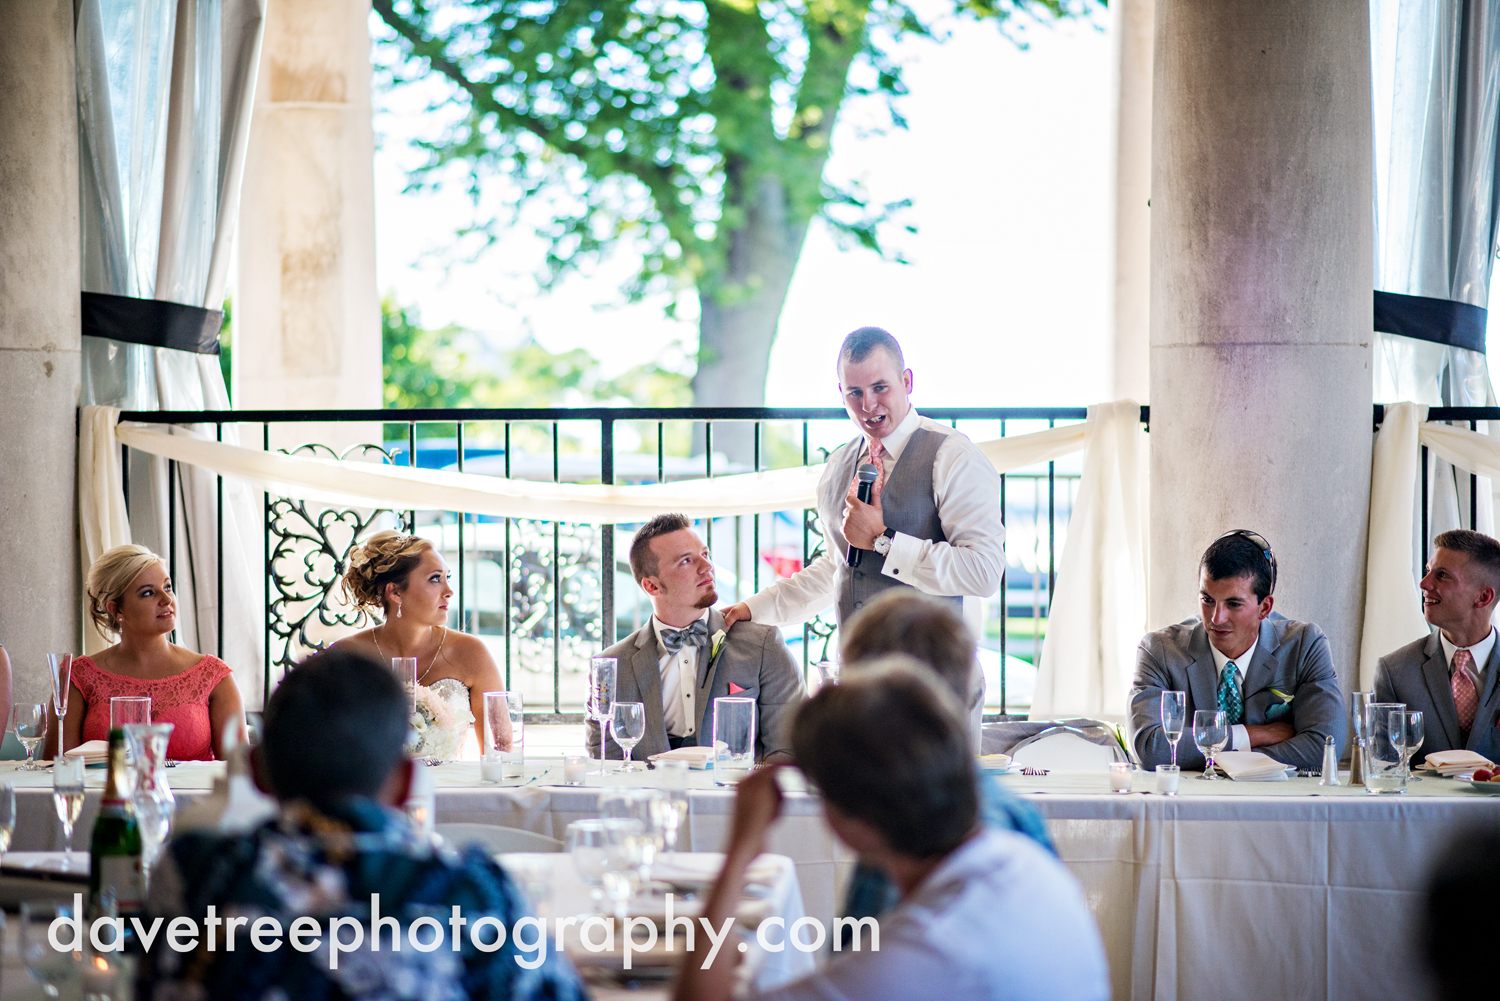 veranda_wedding_photographer_st_joseph_wedding_113.jpg